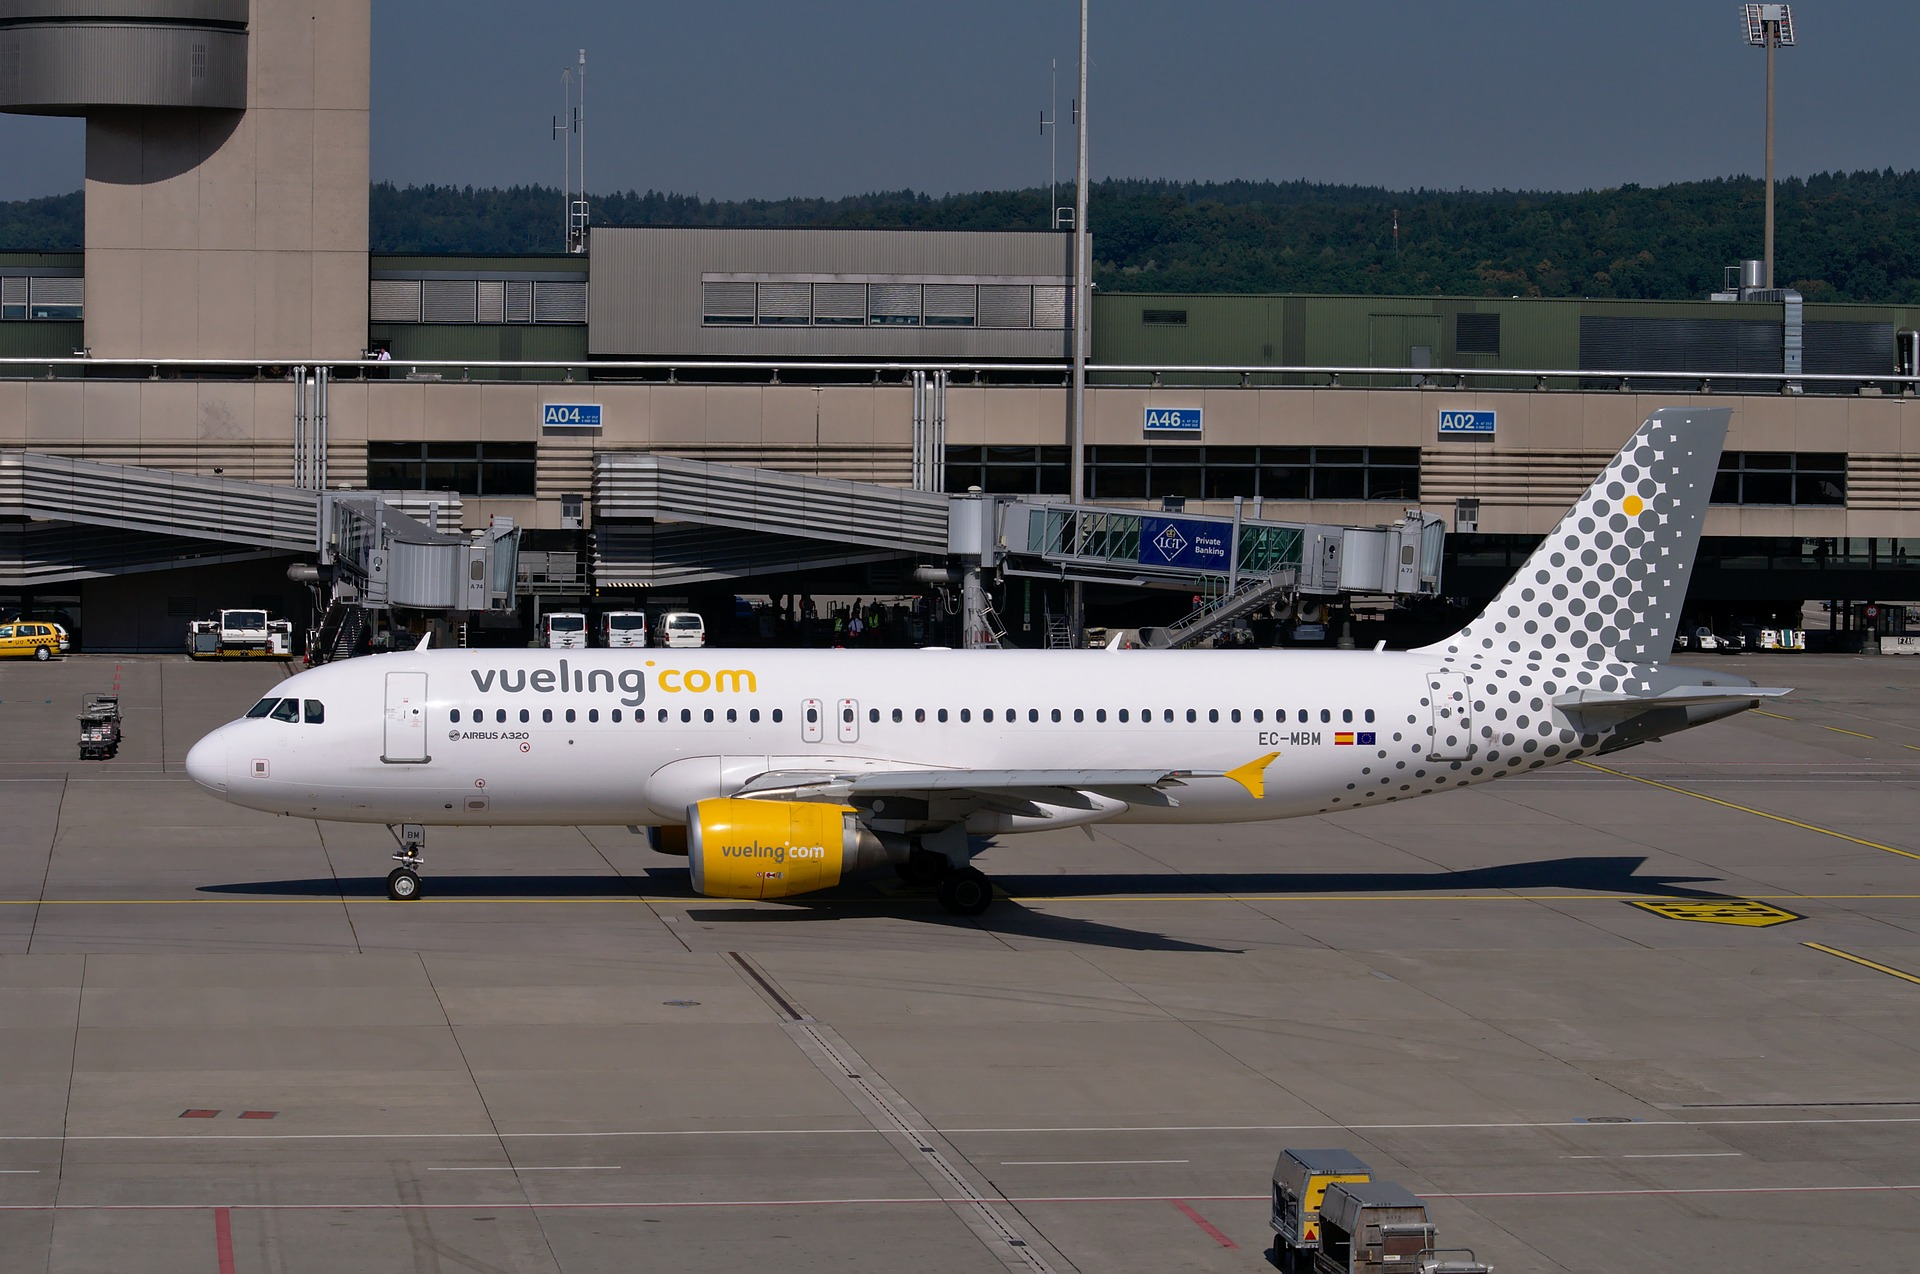 airbus-a320-vueling